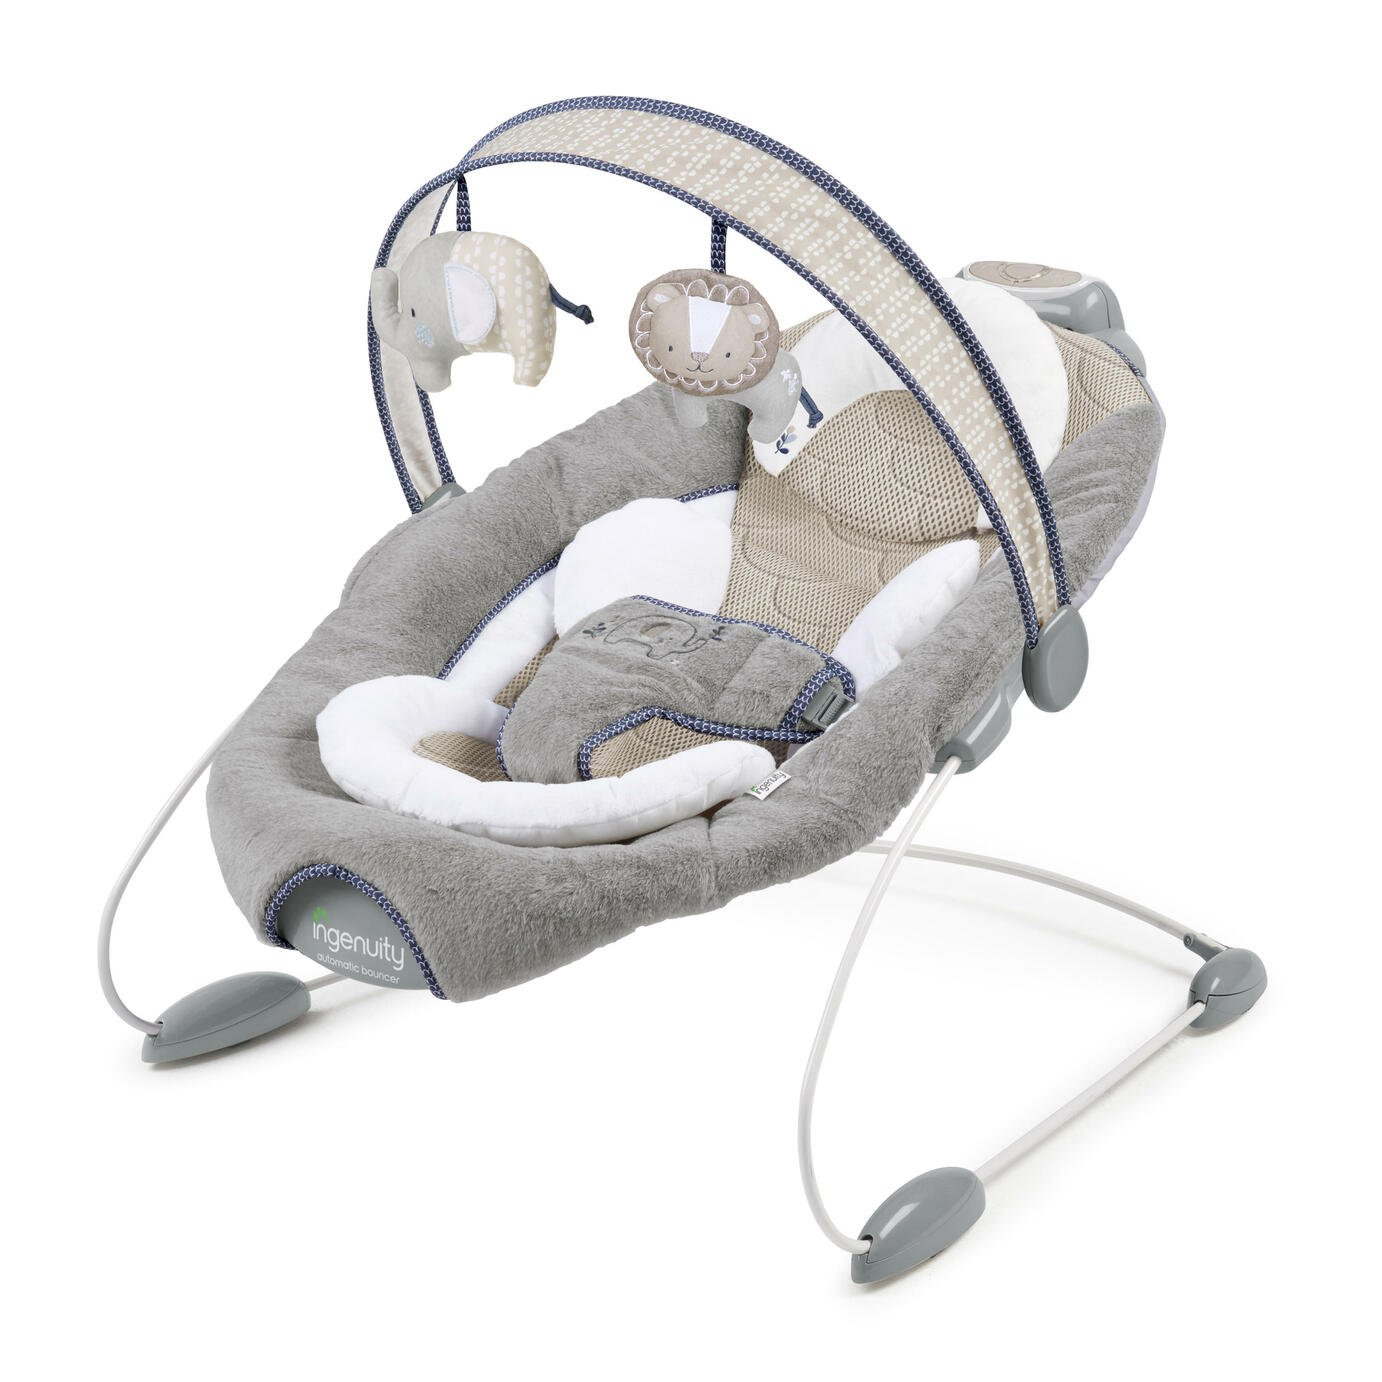 Ingenuity SmartBounce Bouncer Best Price, Cheapest Prices